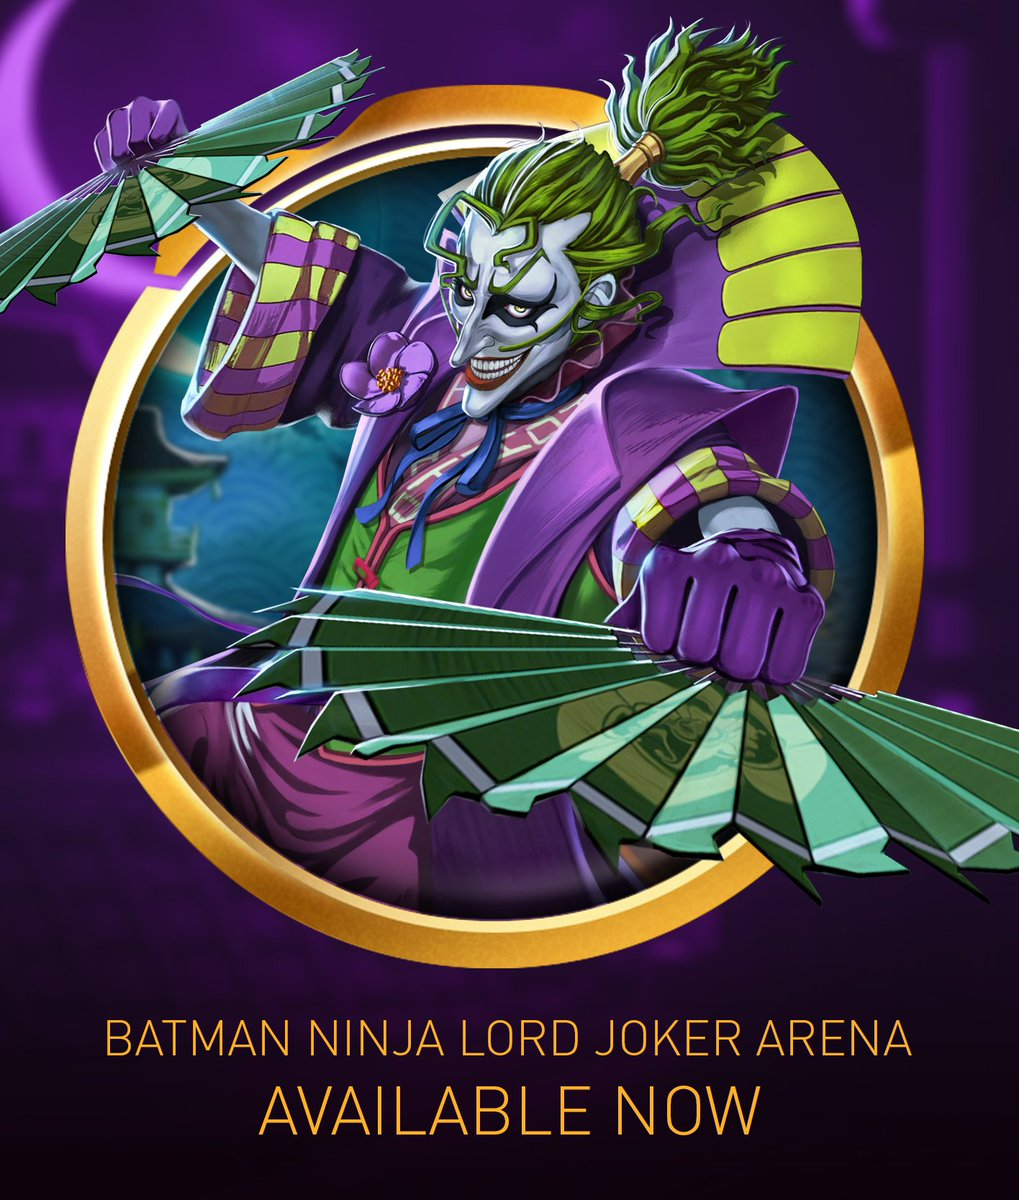 Injustice 2 Mobile On Twitter The Demon King Has Entered The Arena Batmanninja Lord Joker Benefits From The Passives Of Other Batman Ninja Heroes Such As Batman Ninja Catwoman S Blinding Effect Batman